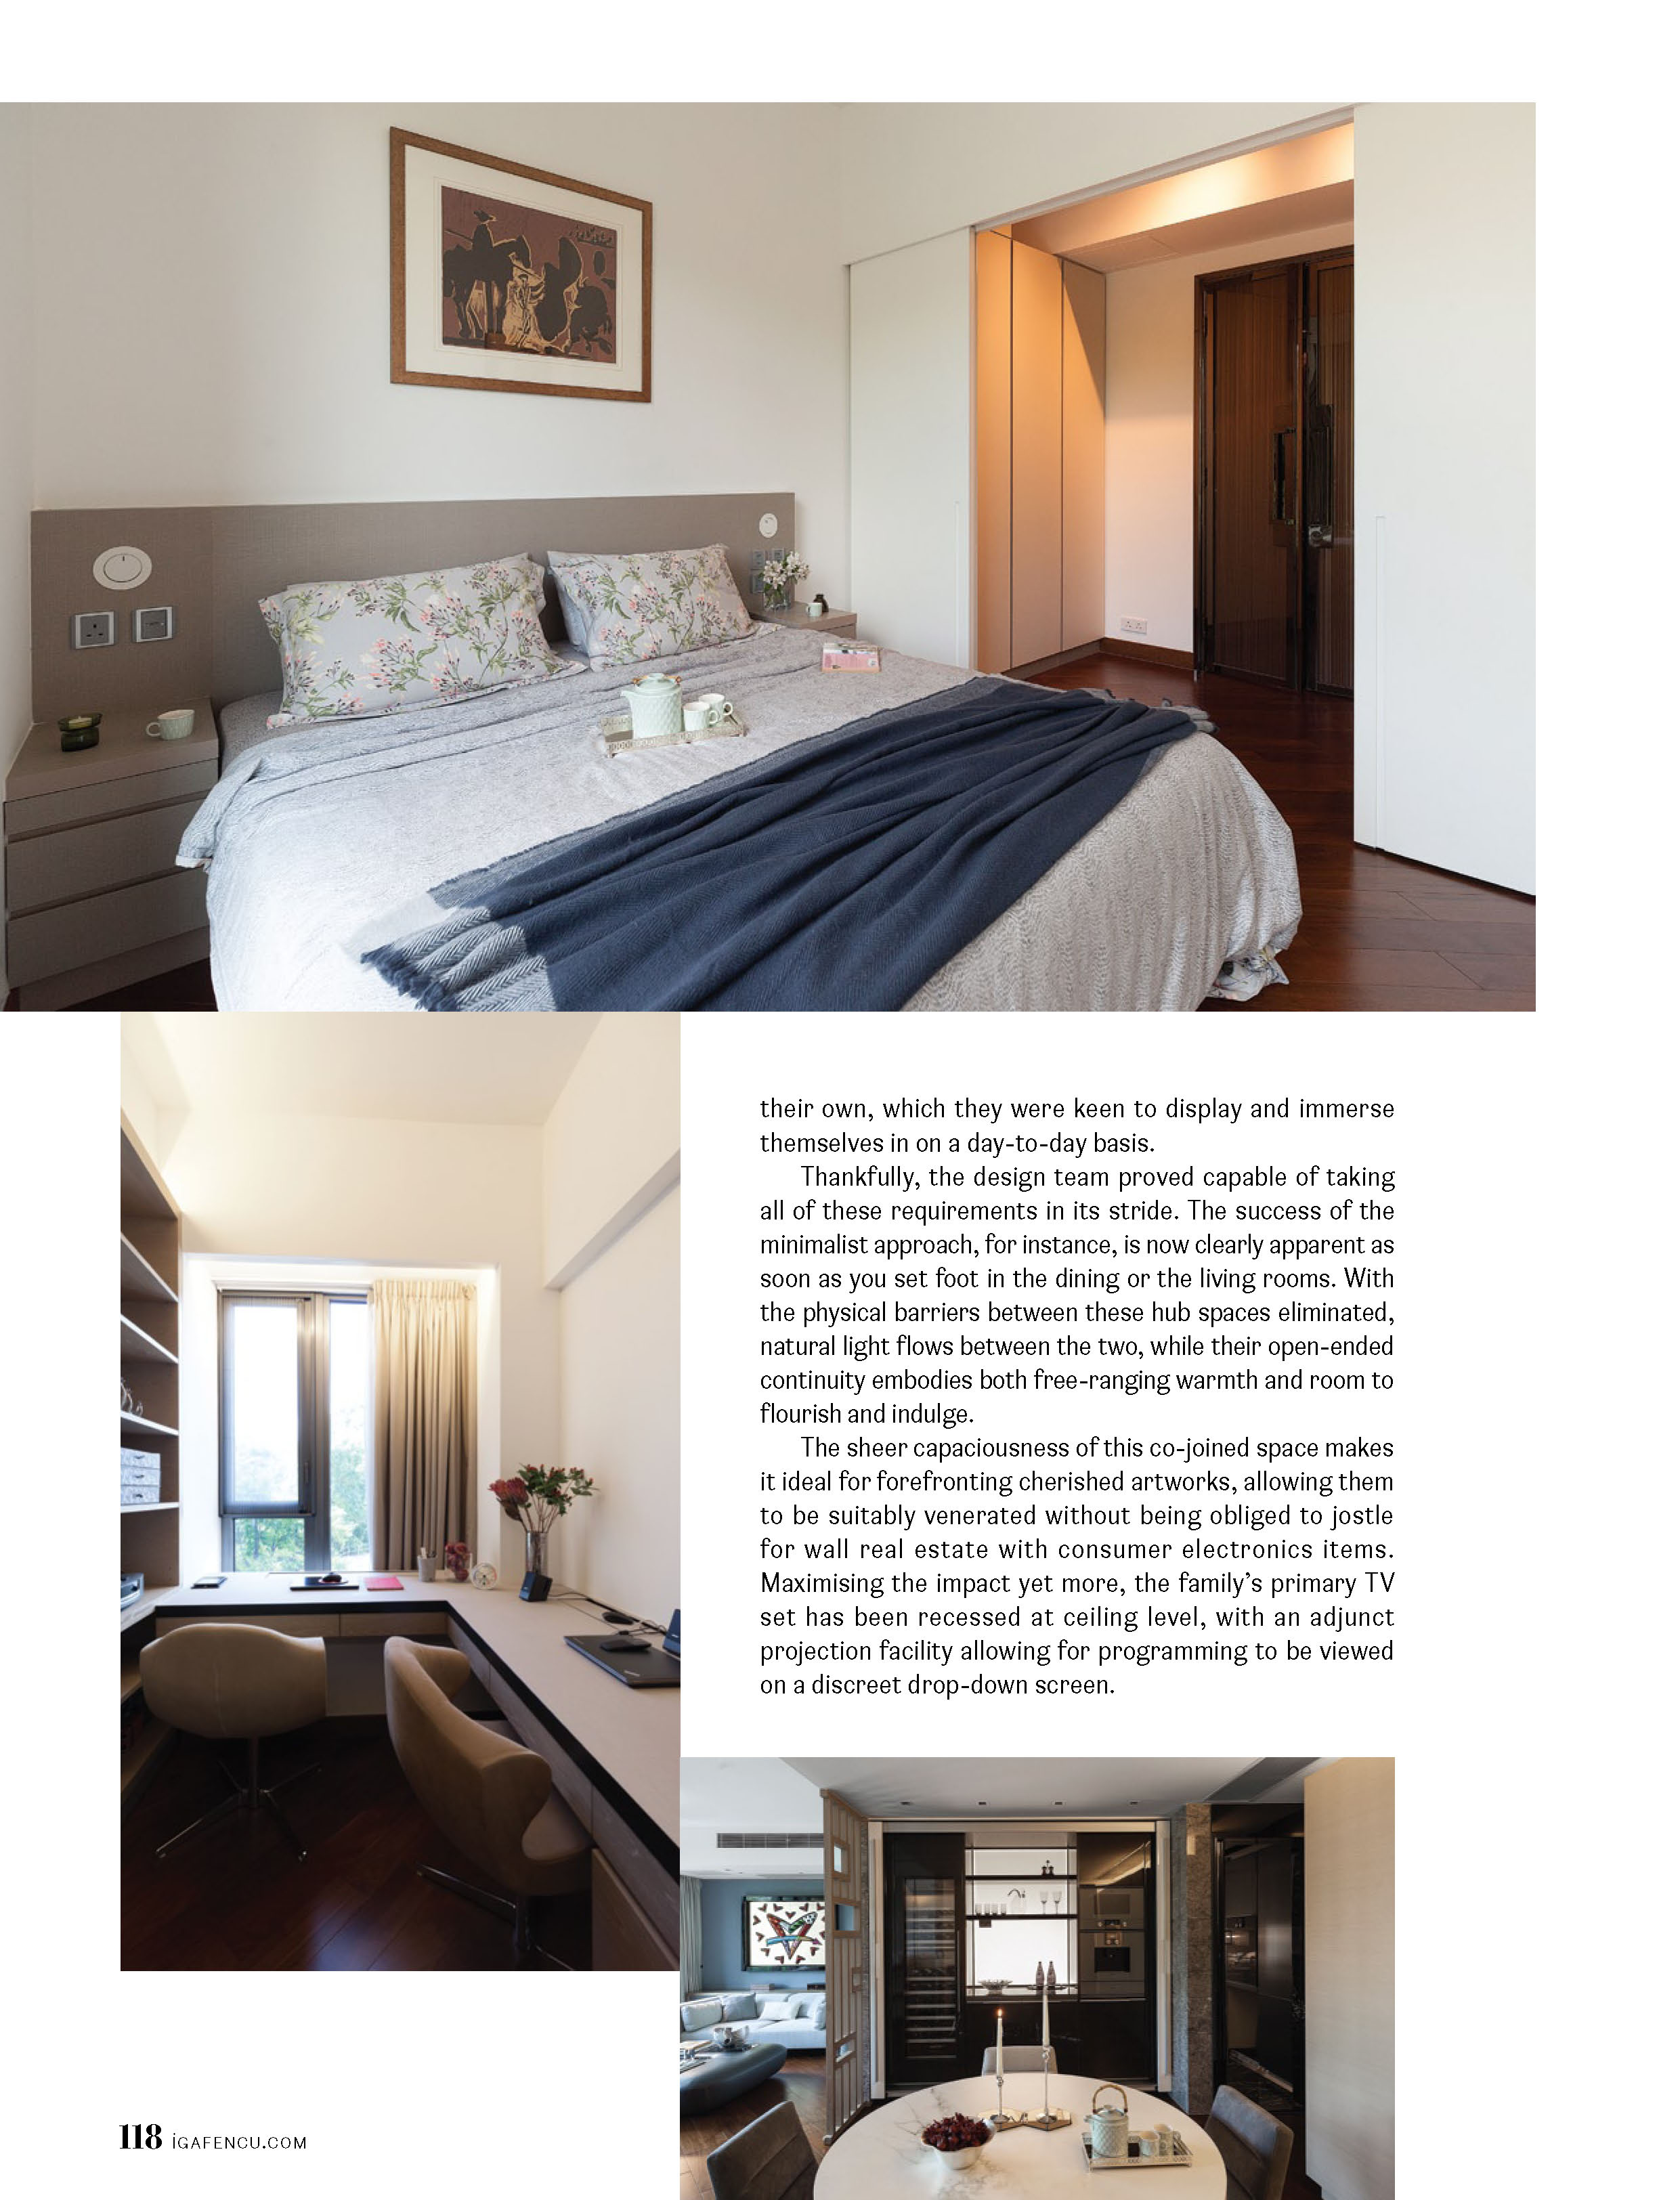 Hotel Style Home | Gafencu | March 2019 Issue - page5